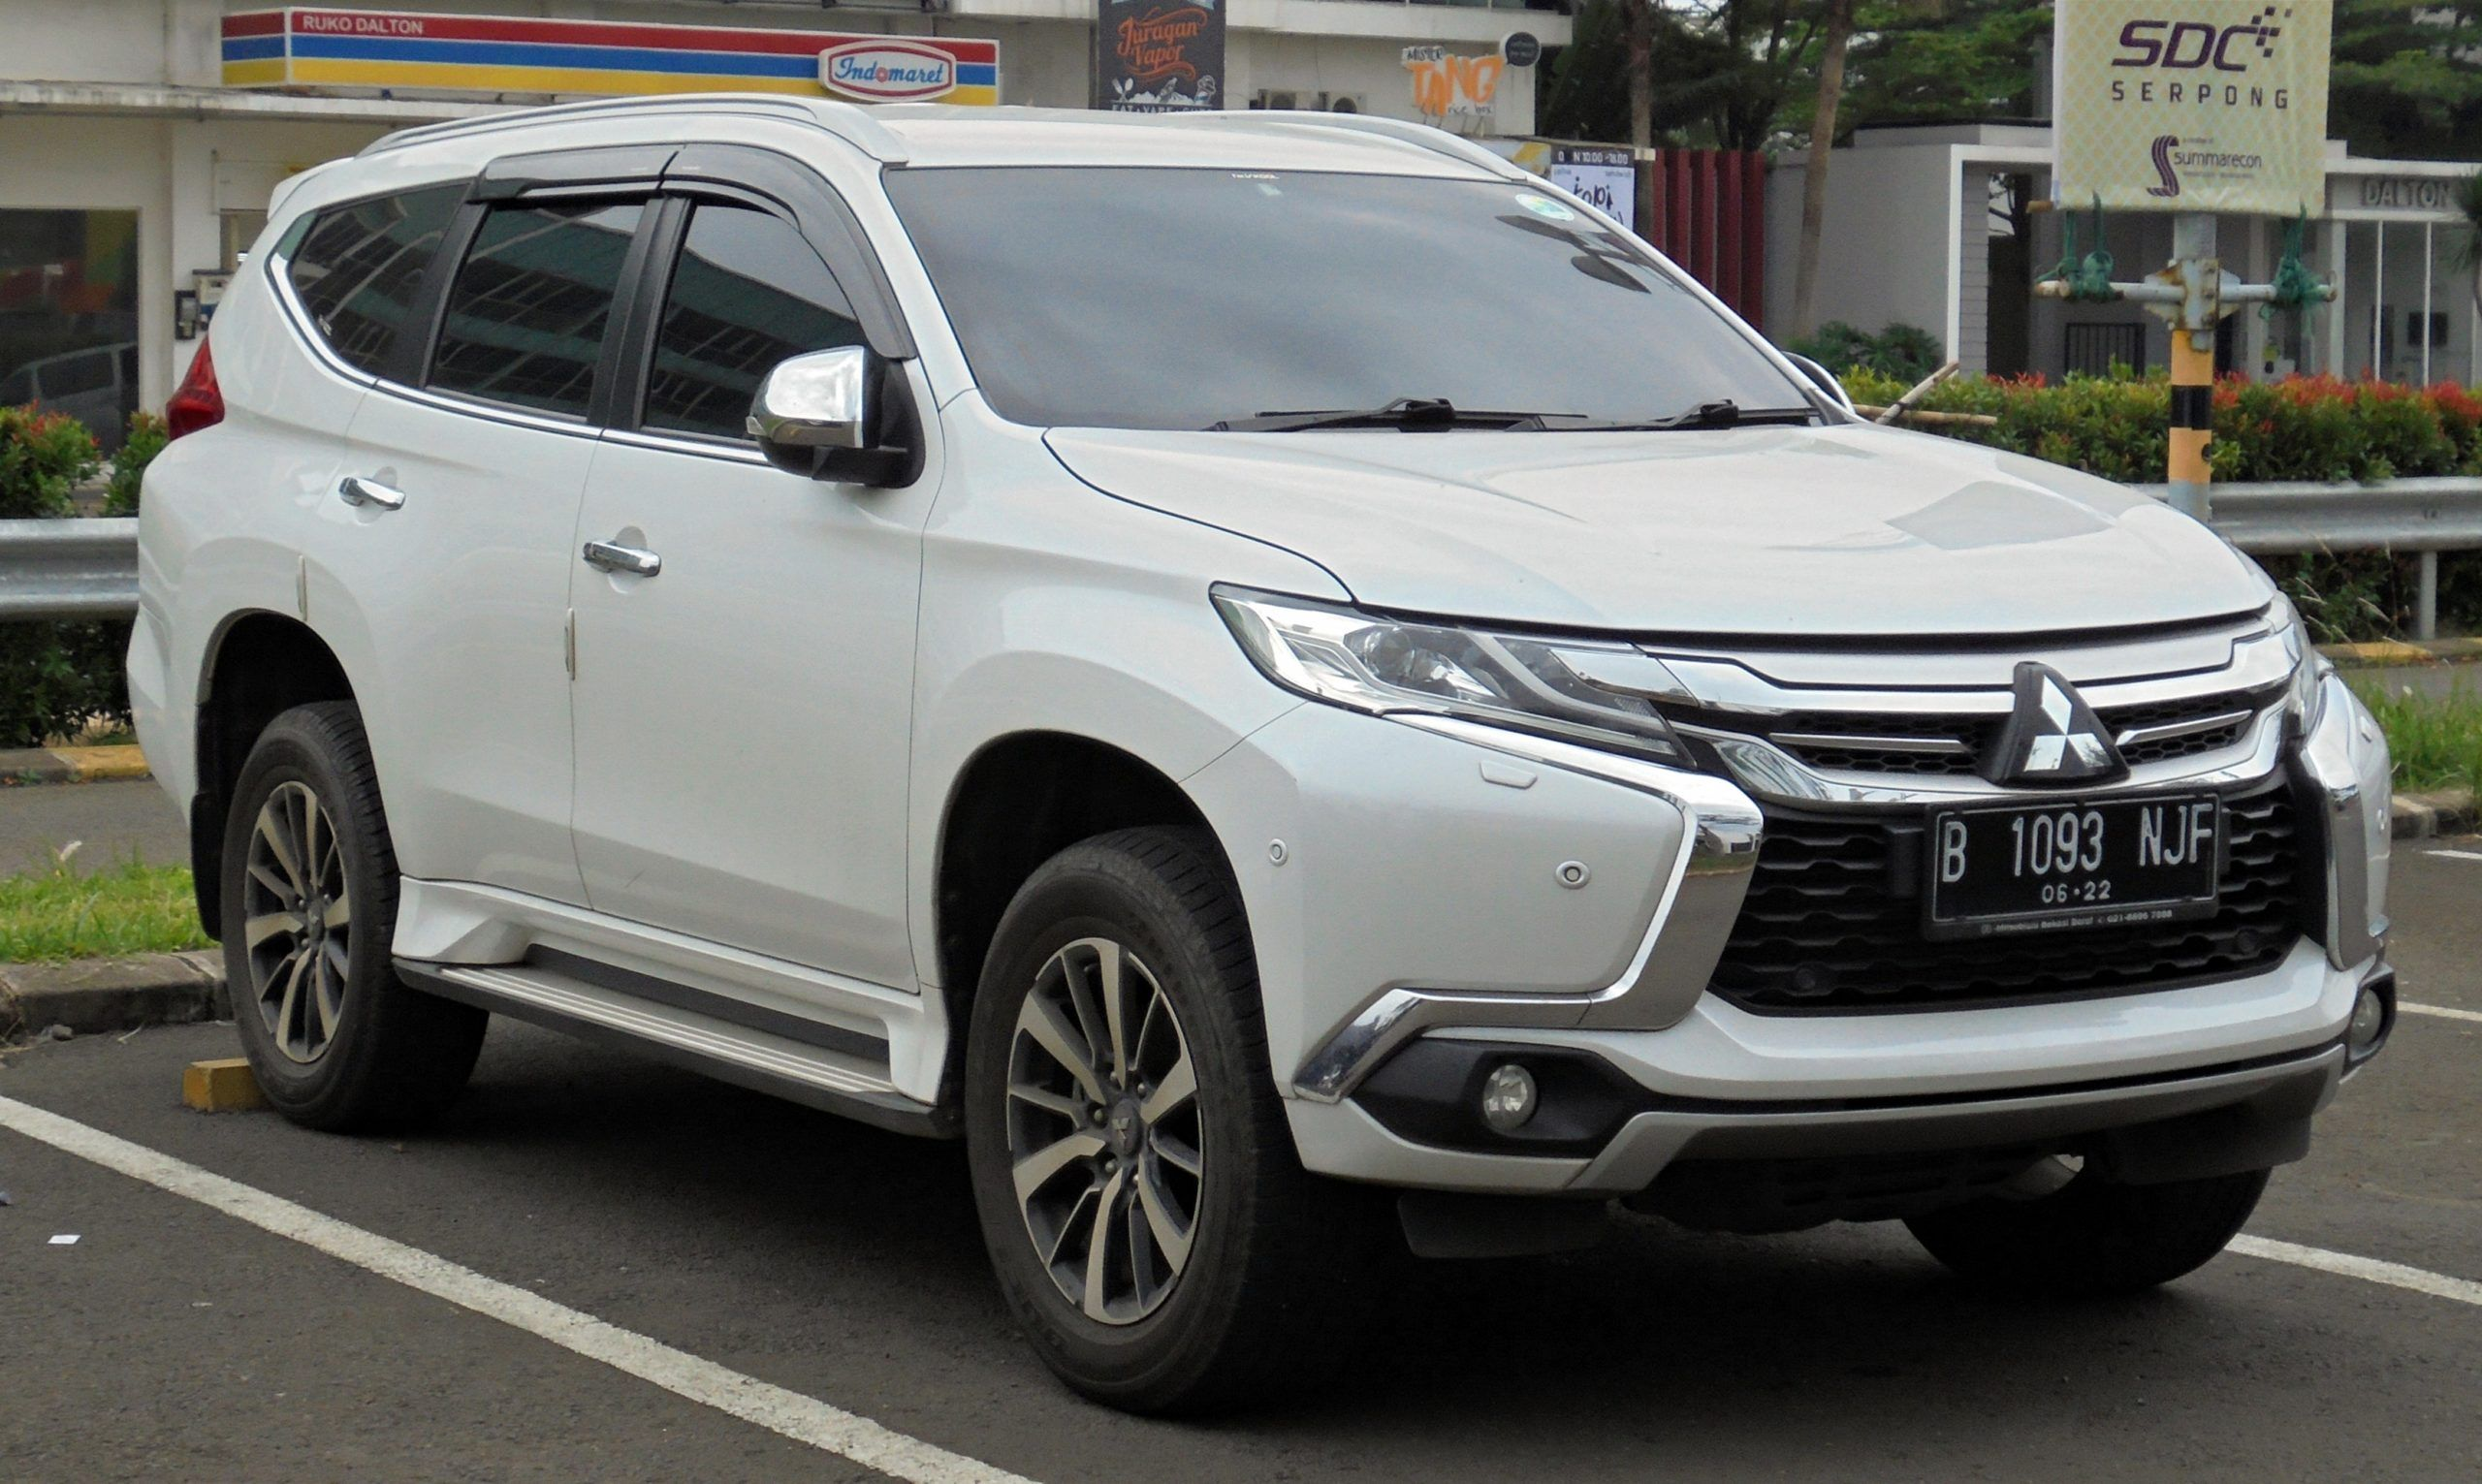 How To Have A Fantastic 2021 Mitsubishi L200 Design With Minimal Spending 4x4 Interior Mobil Bmw